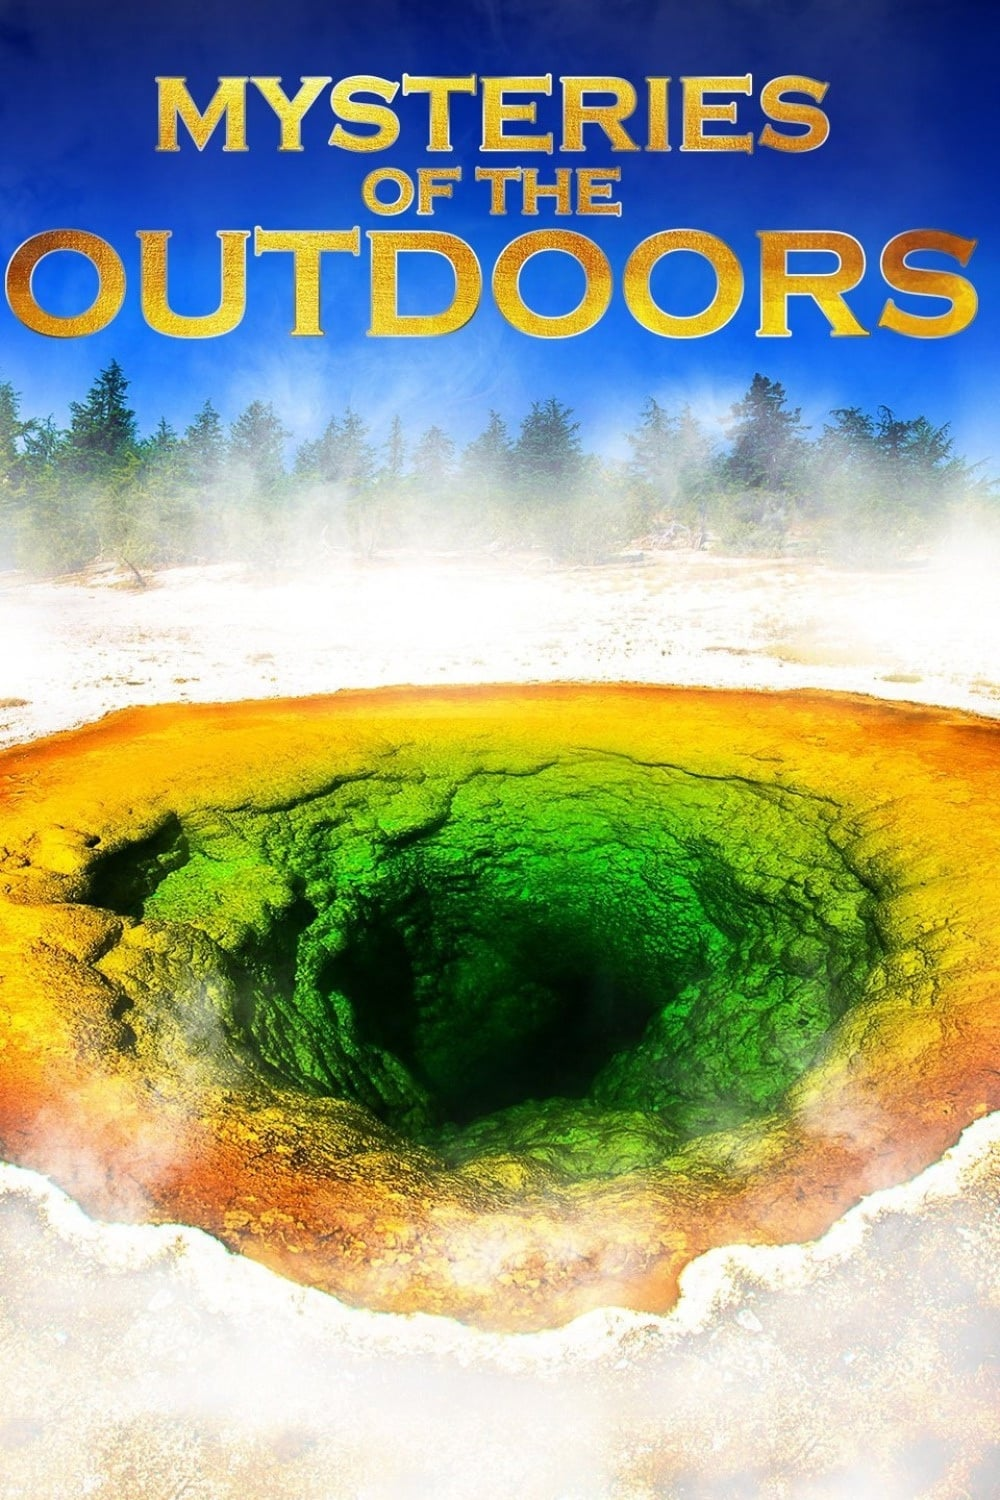 Mysteries of the Outdoors (2015)